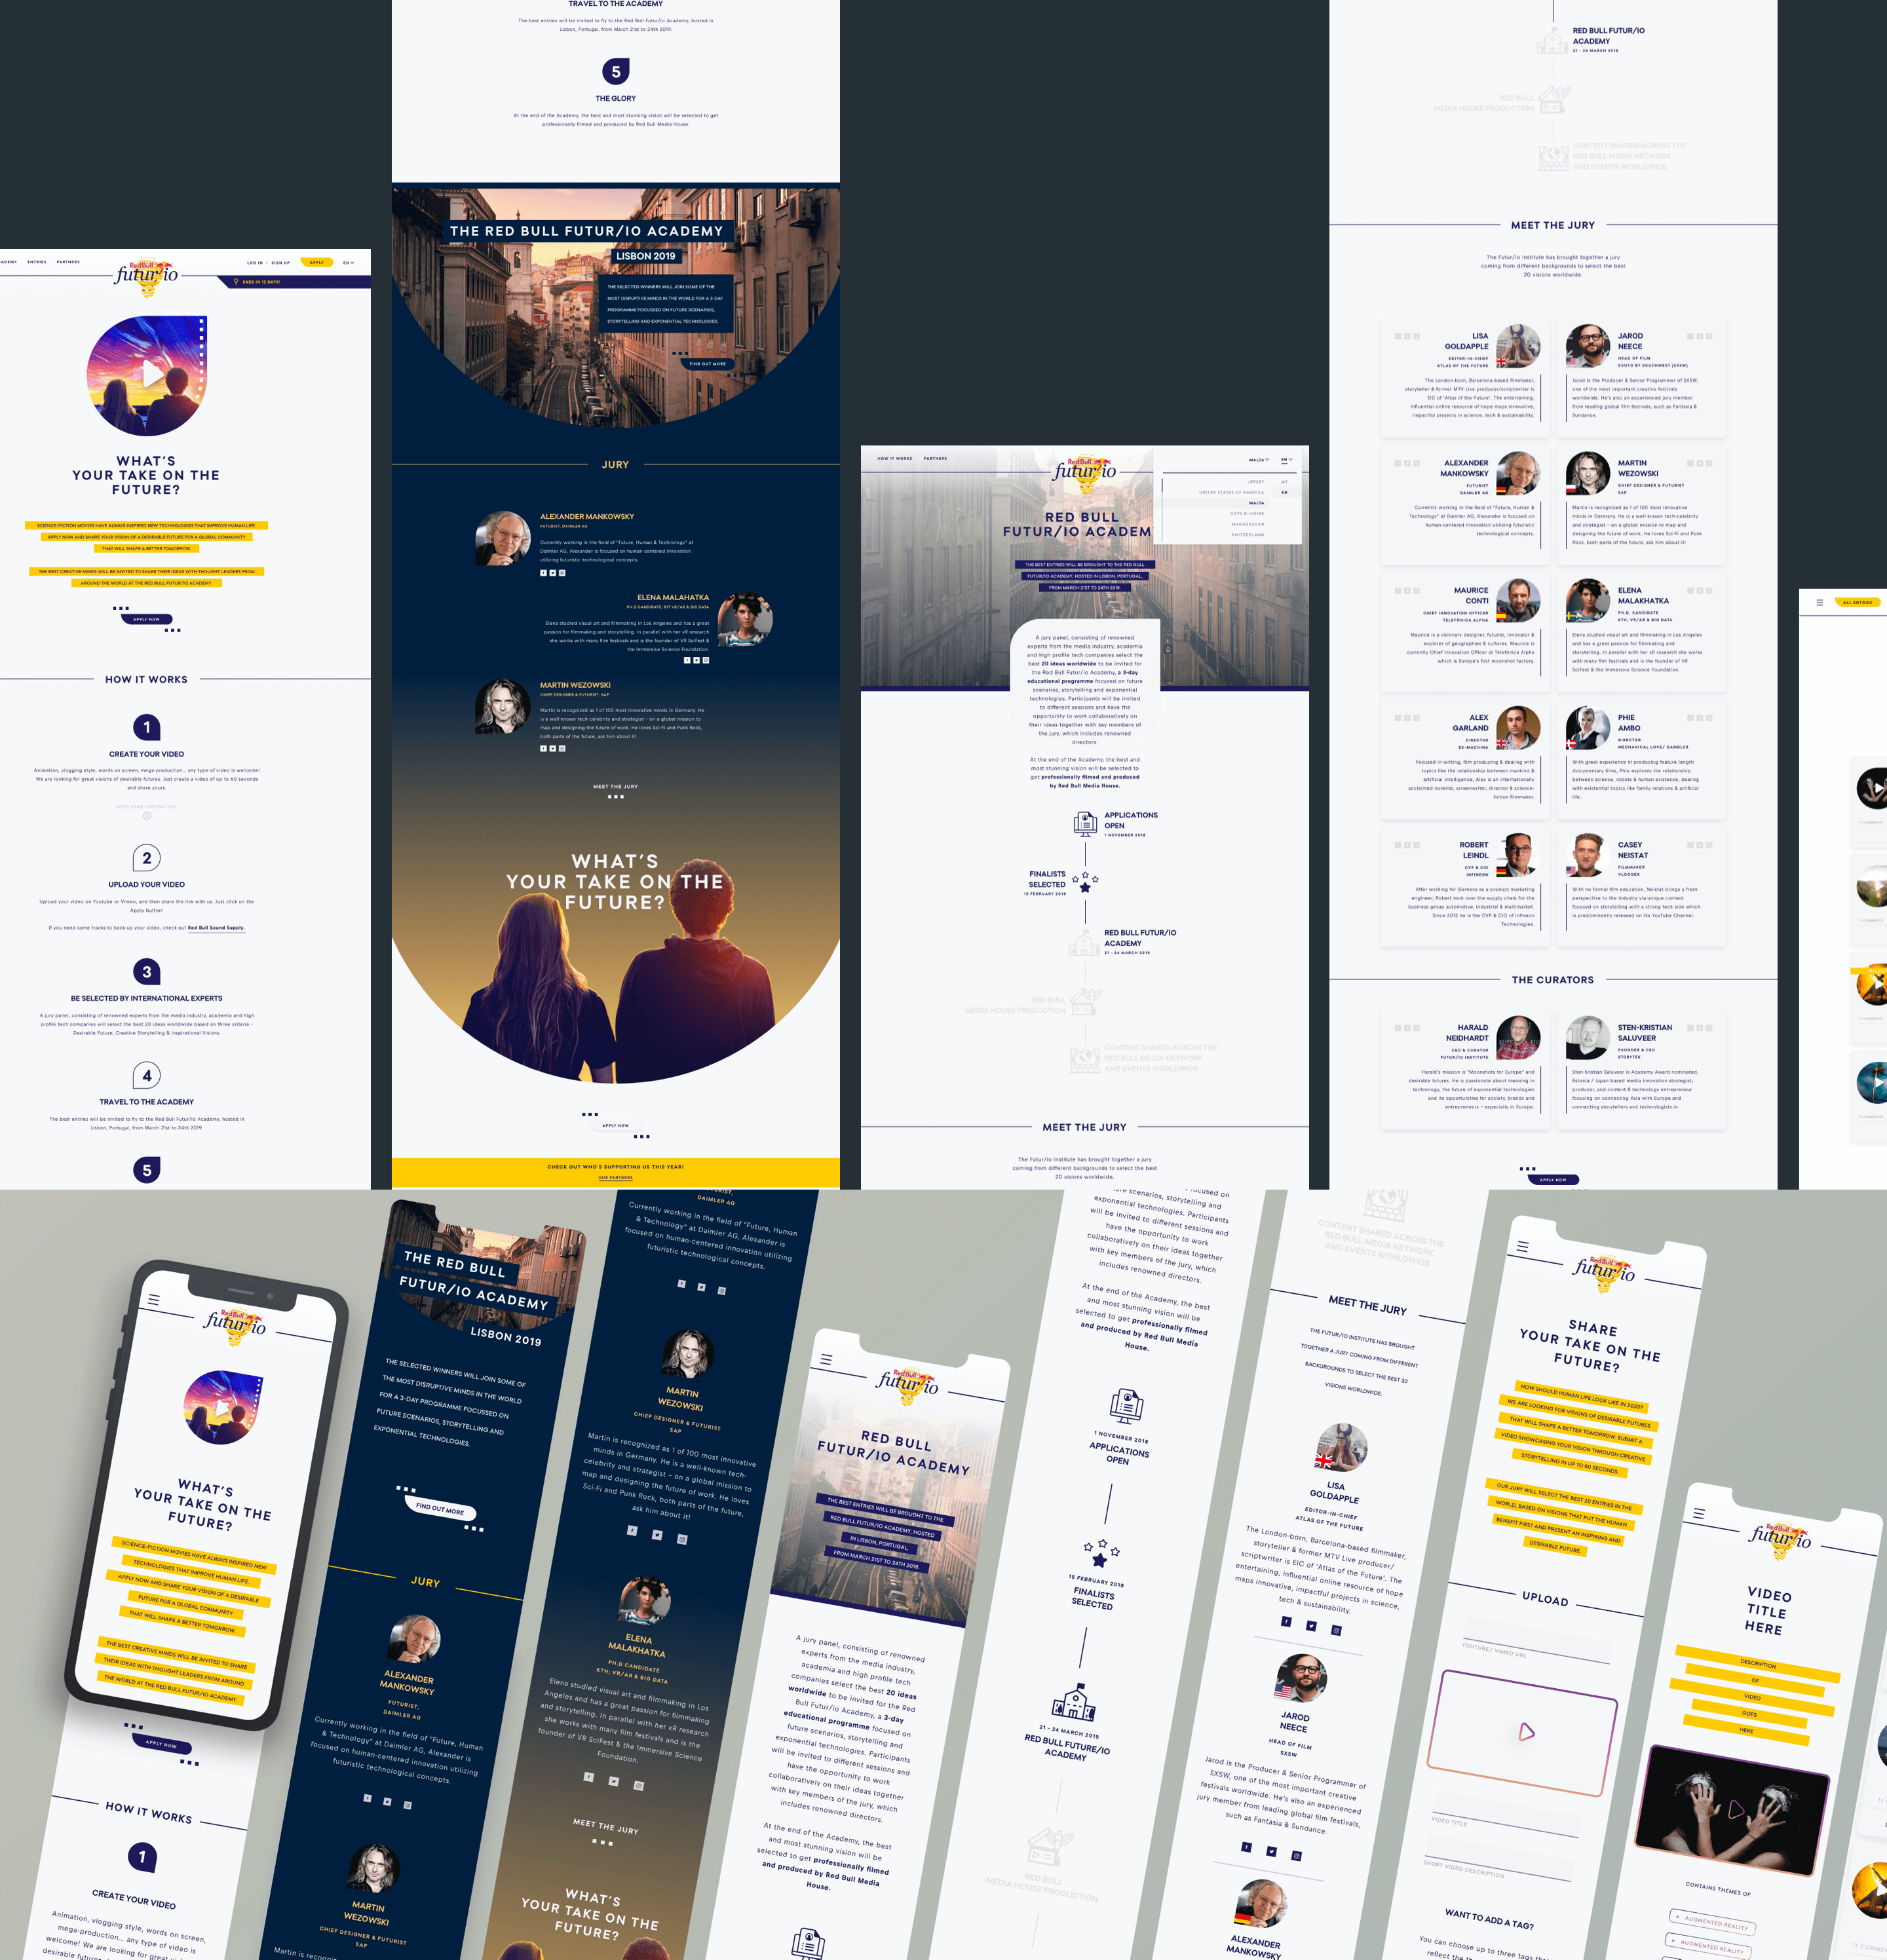 An overview of the website design & mobile designs